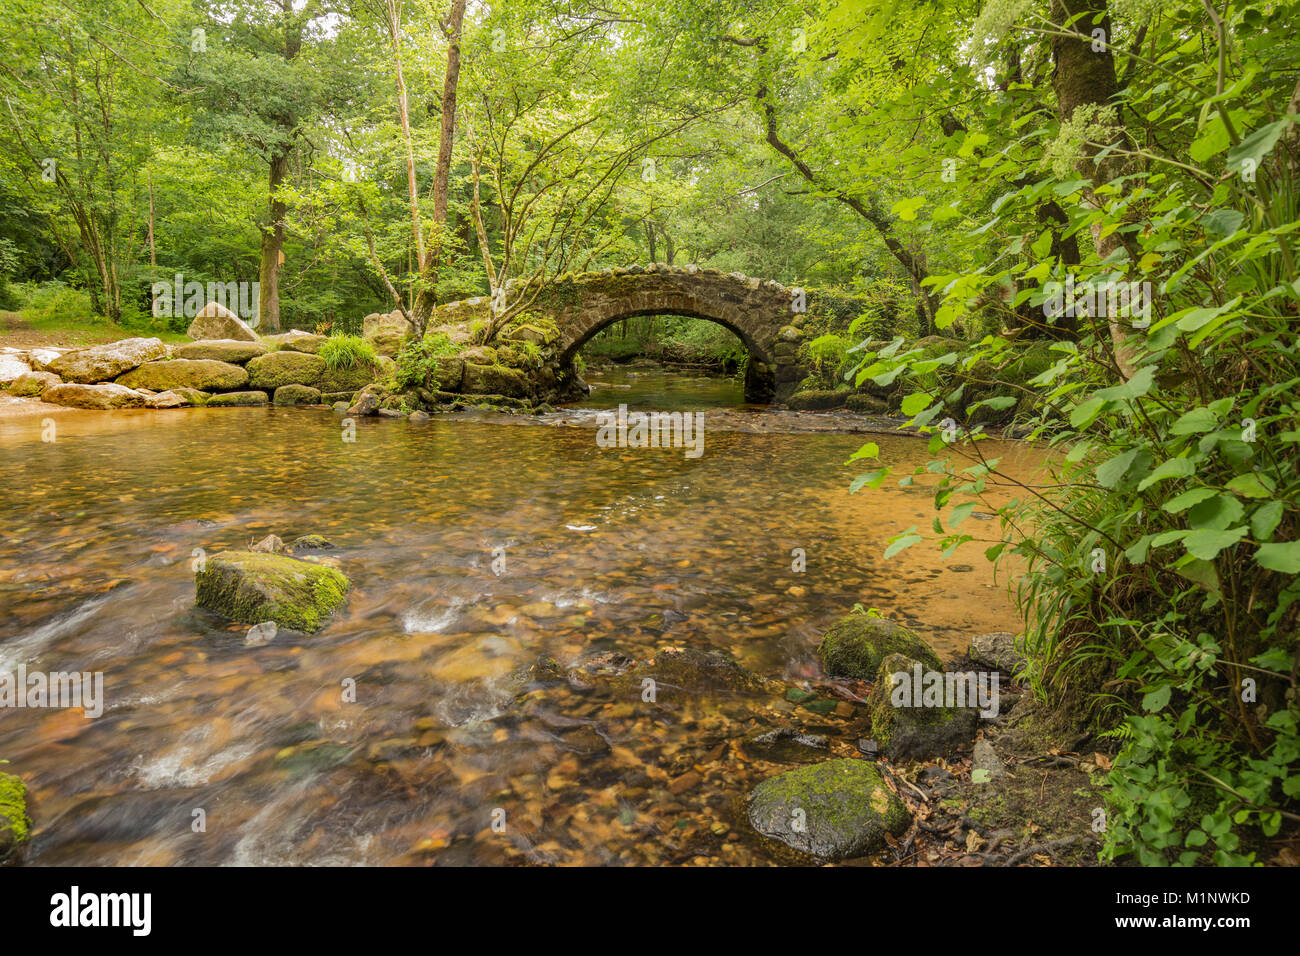 An image of an ancient packhorse bridge situated on the river Bovey, Dartmoor, Devon UK. - Stock Image